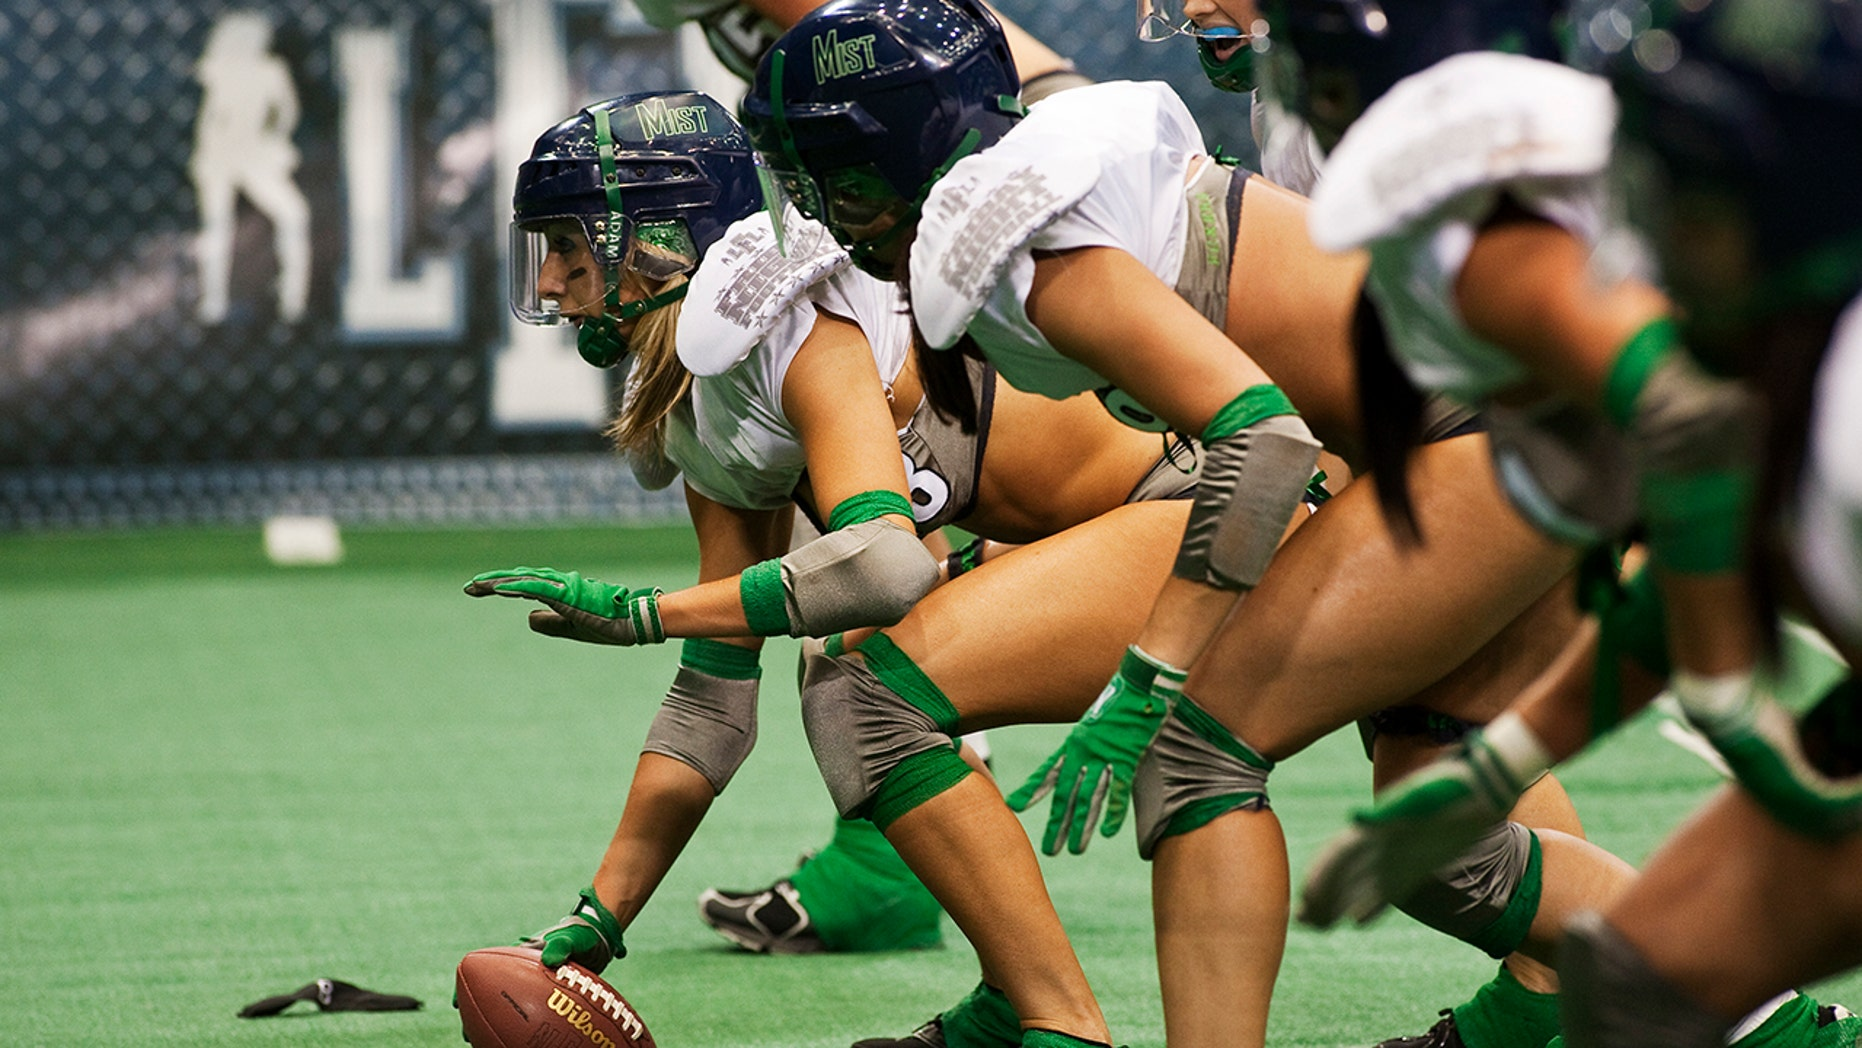 The Los Angeles Temptation vs the Seattle Mist. The LFL is a full contact professional woman's football league played in lingerie.